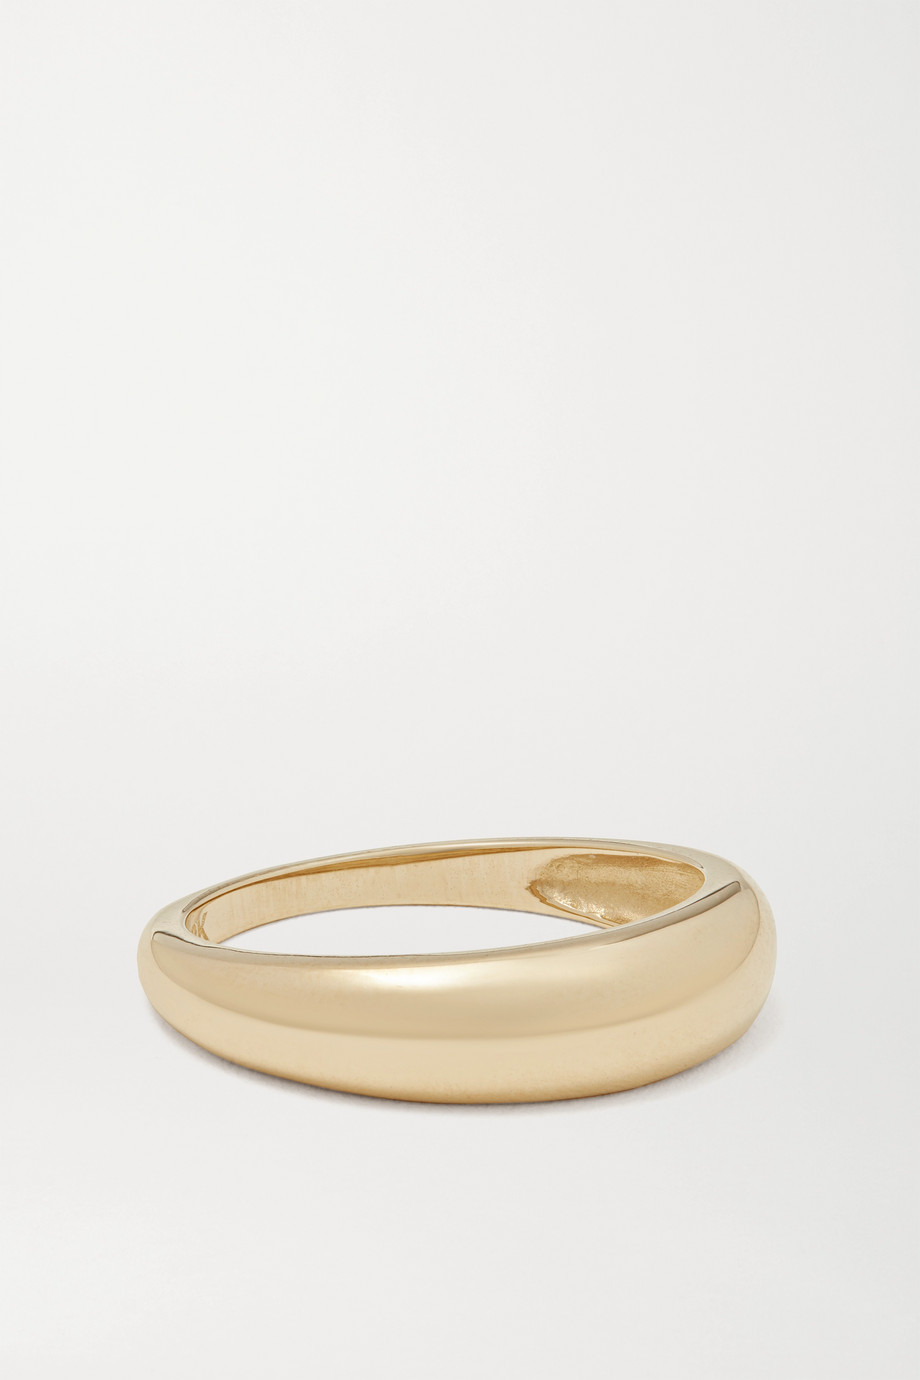 STONE AND STRAND Bombe 9-karat gold ring